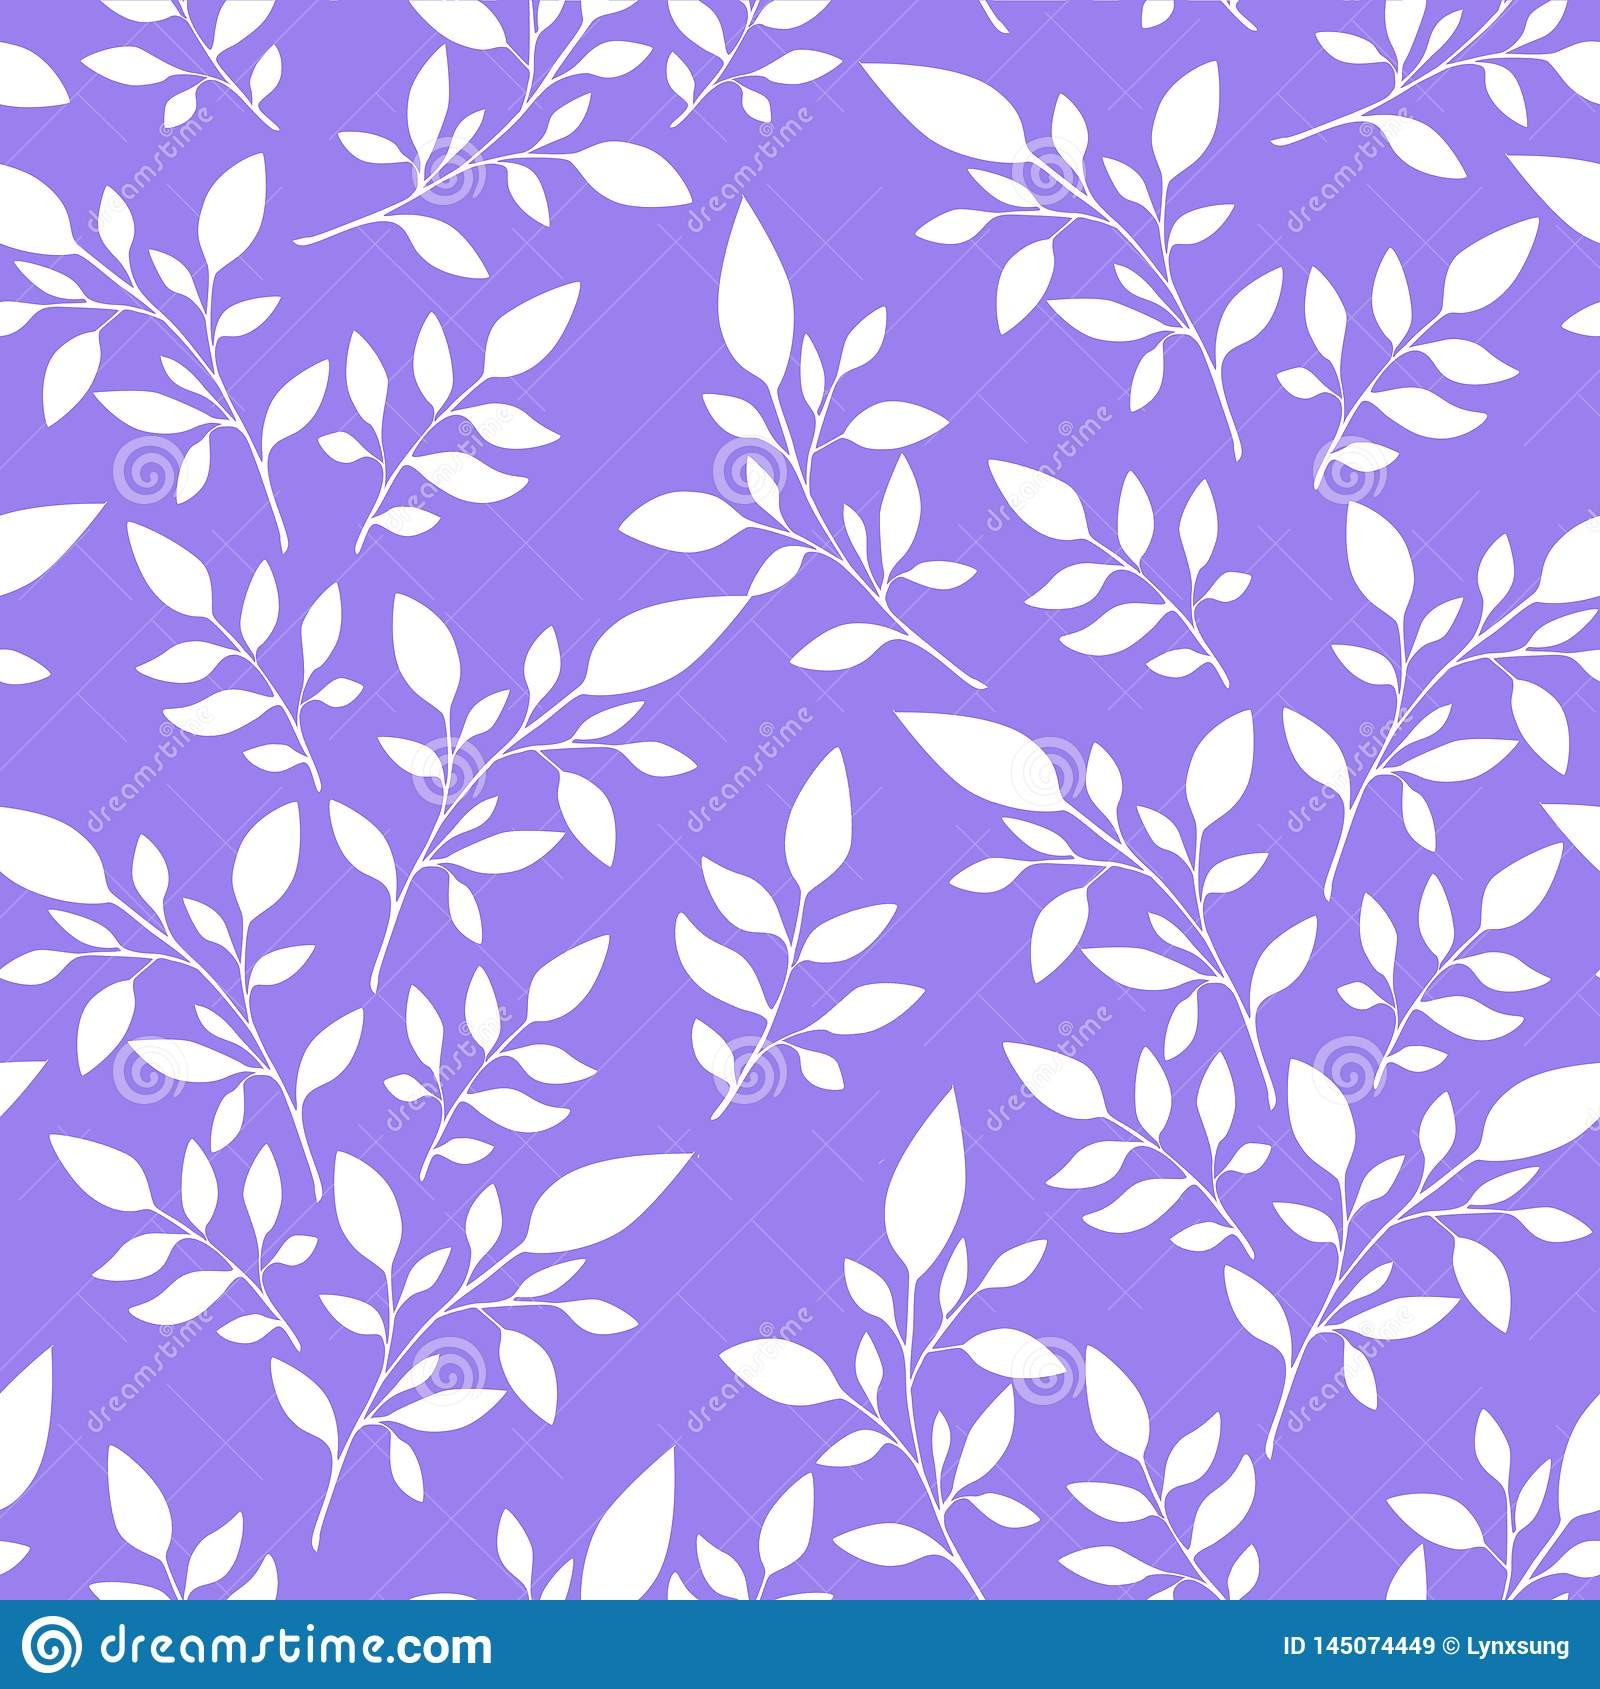 Floral pattern with leaves can be used for textile printing or background, wallpaper, ad, banner